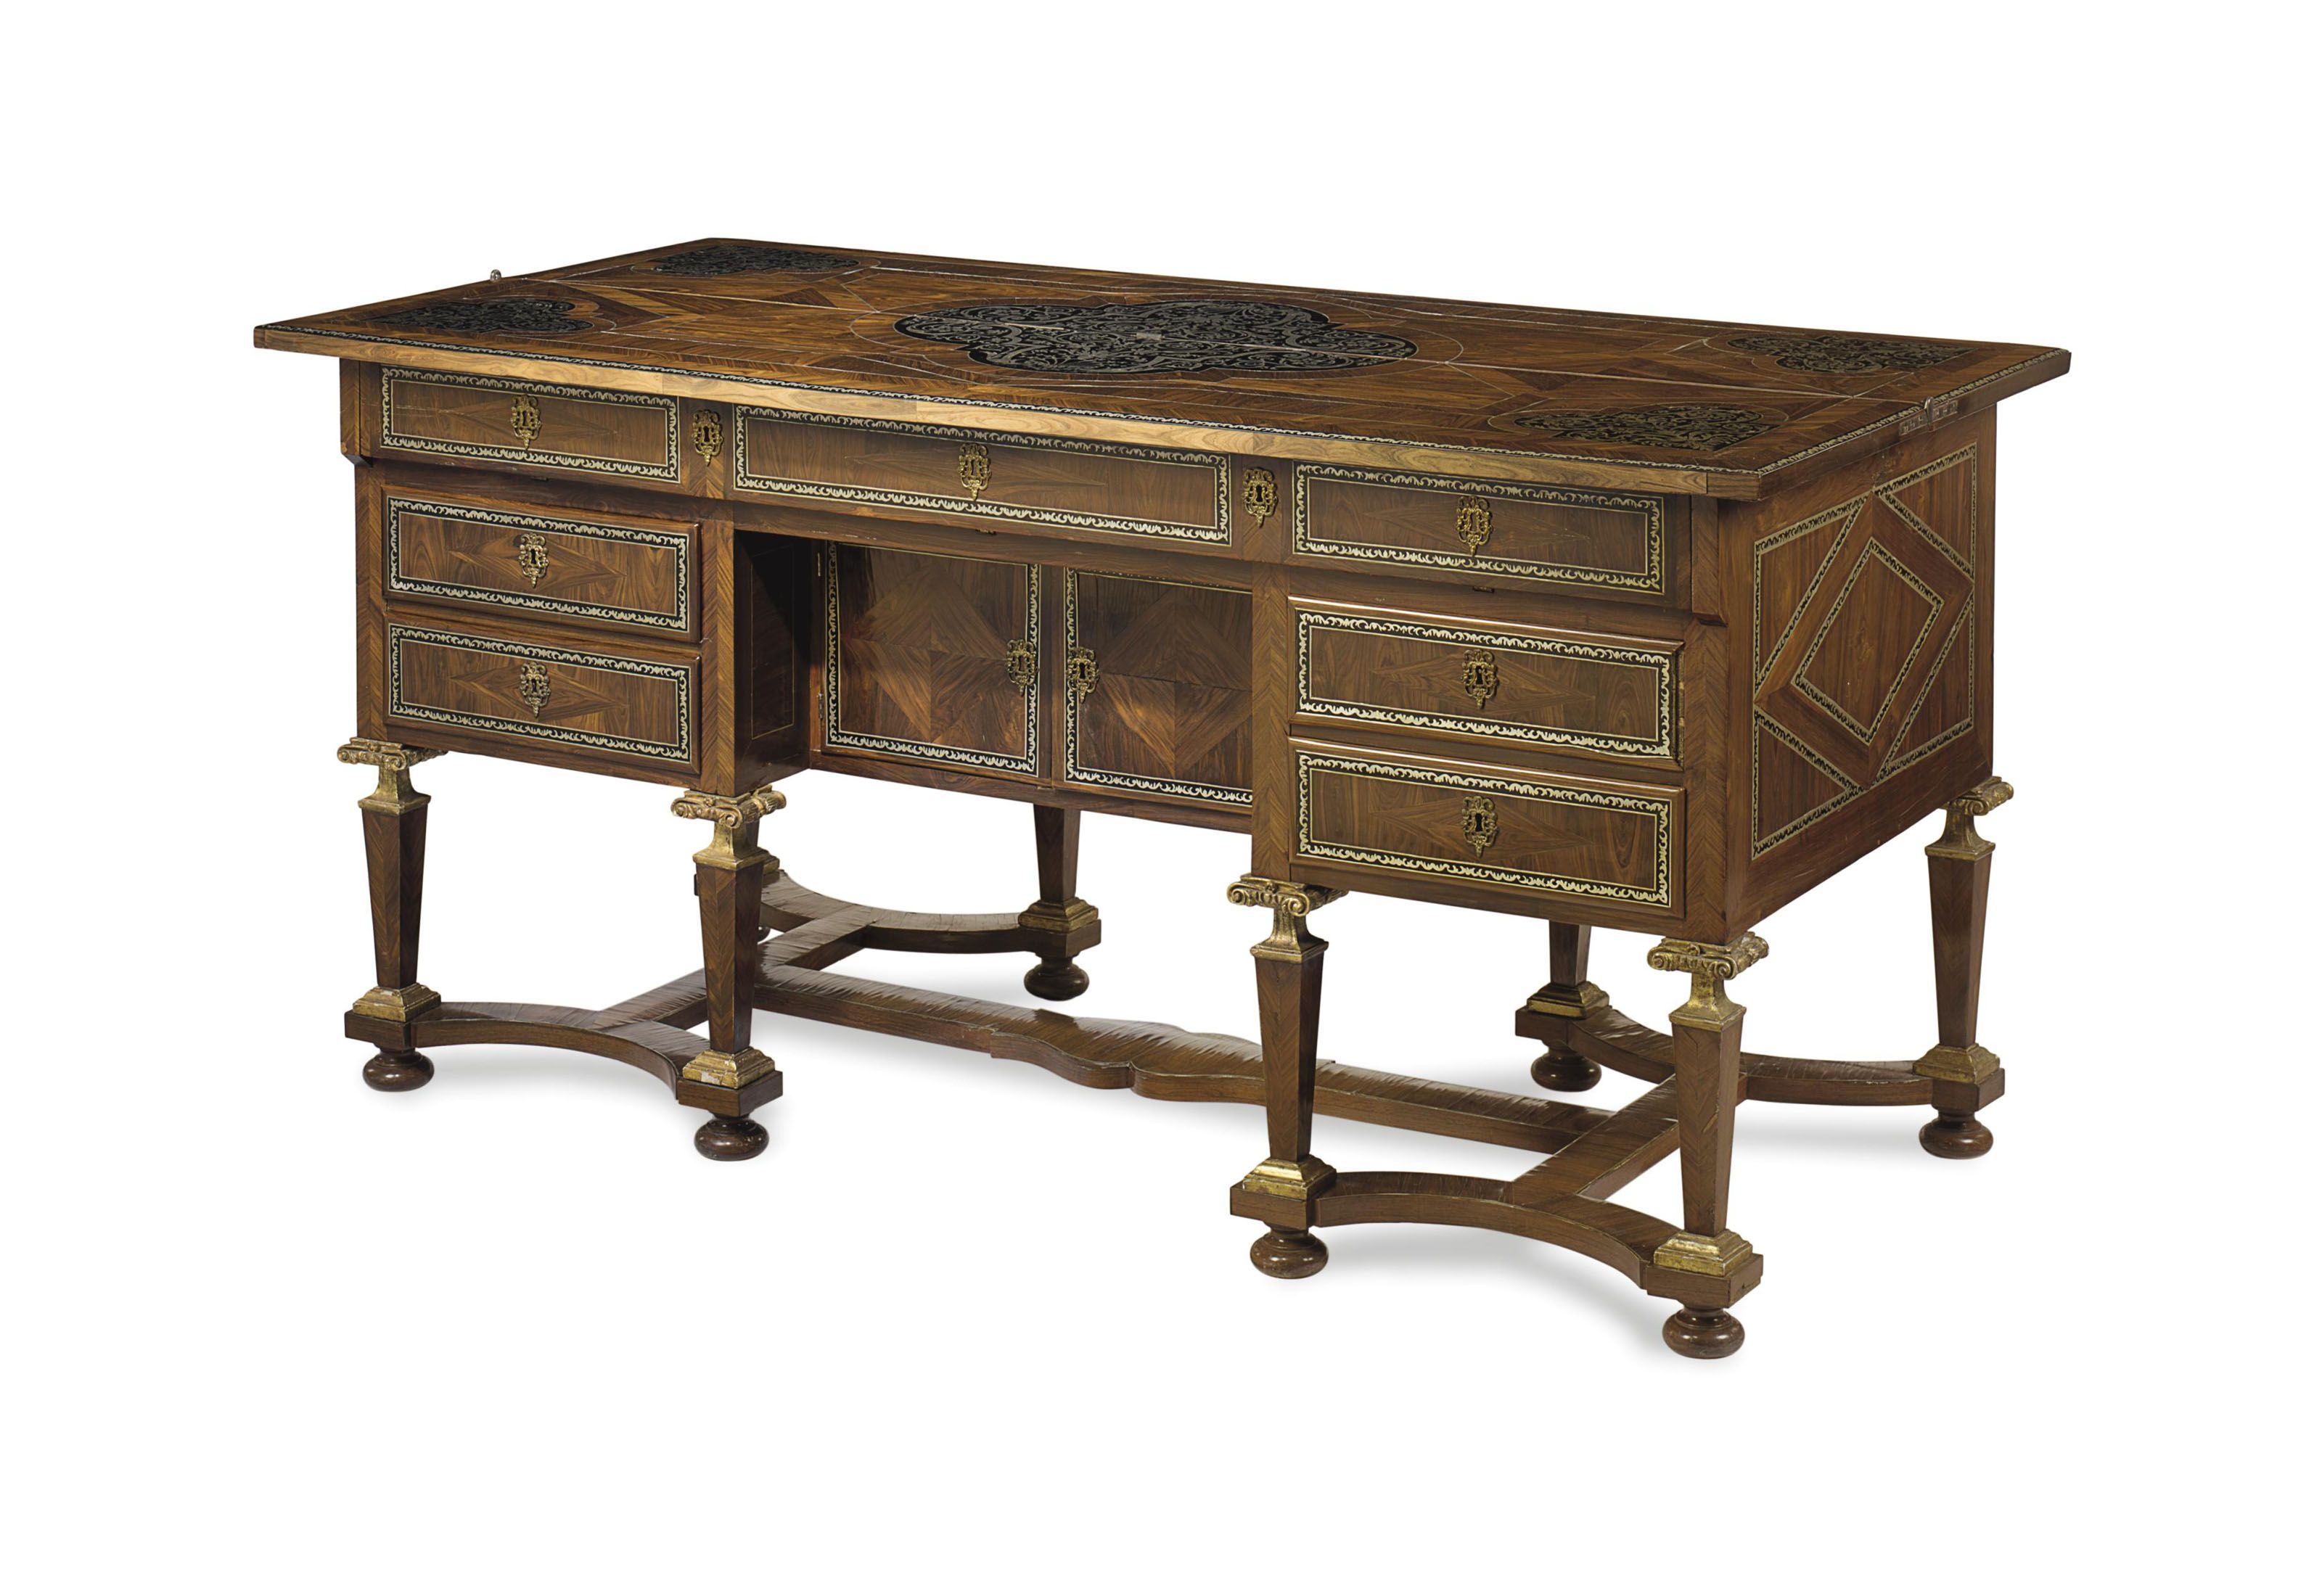 C1680 A Louis Xiv Pewter Inlaid Kingwood Ebony And Marquetry Bureau Mazarin Circa 1680 Price Realised Usd 25 000 French Furniture Furniture Kingwood